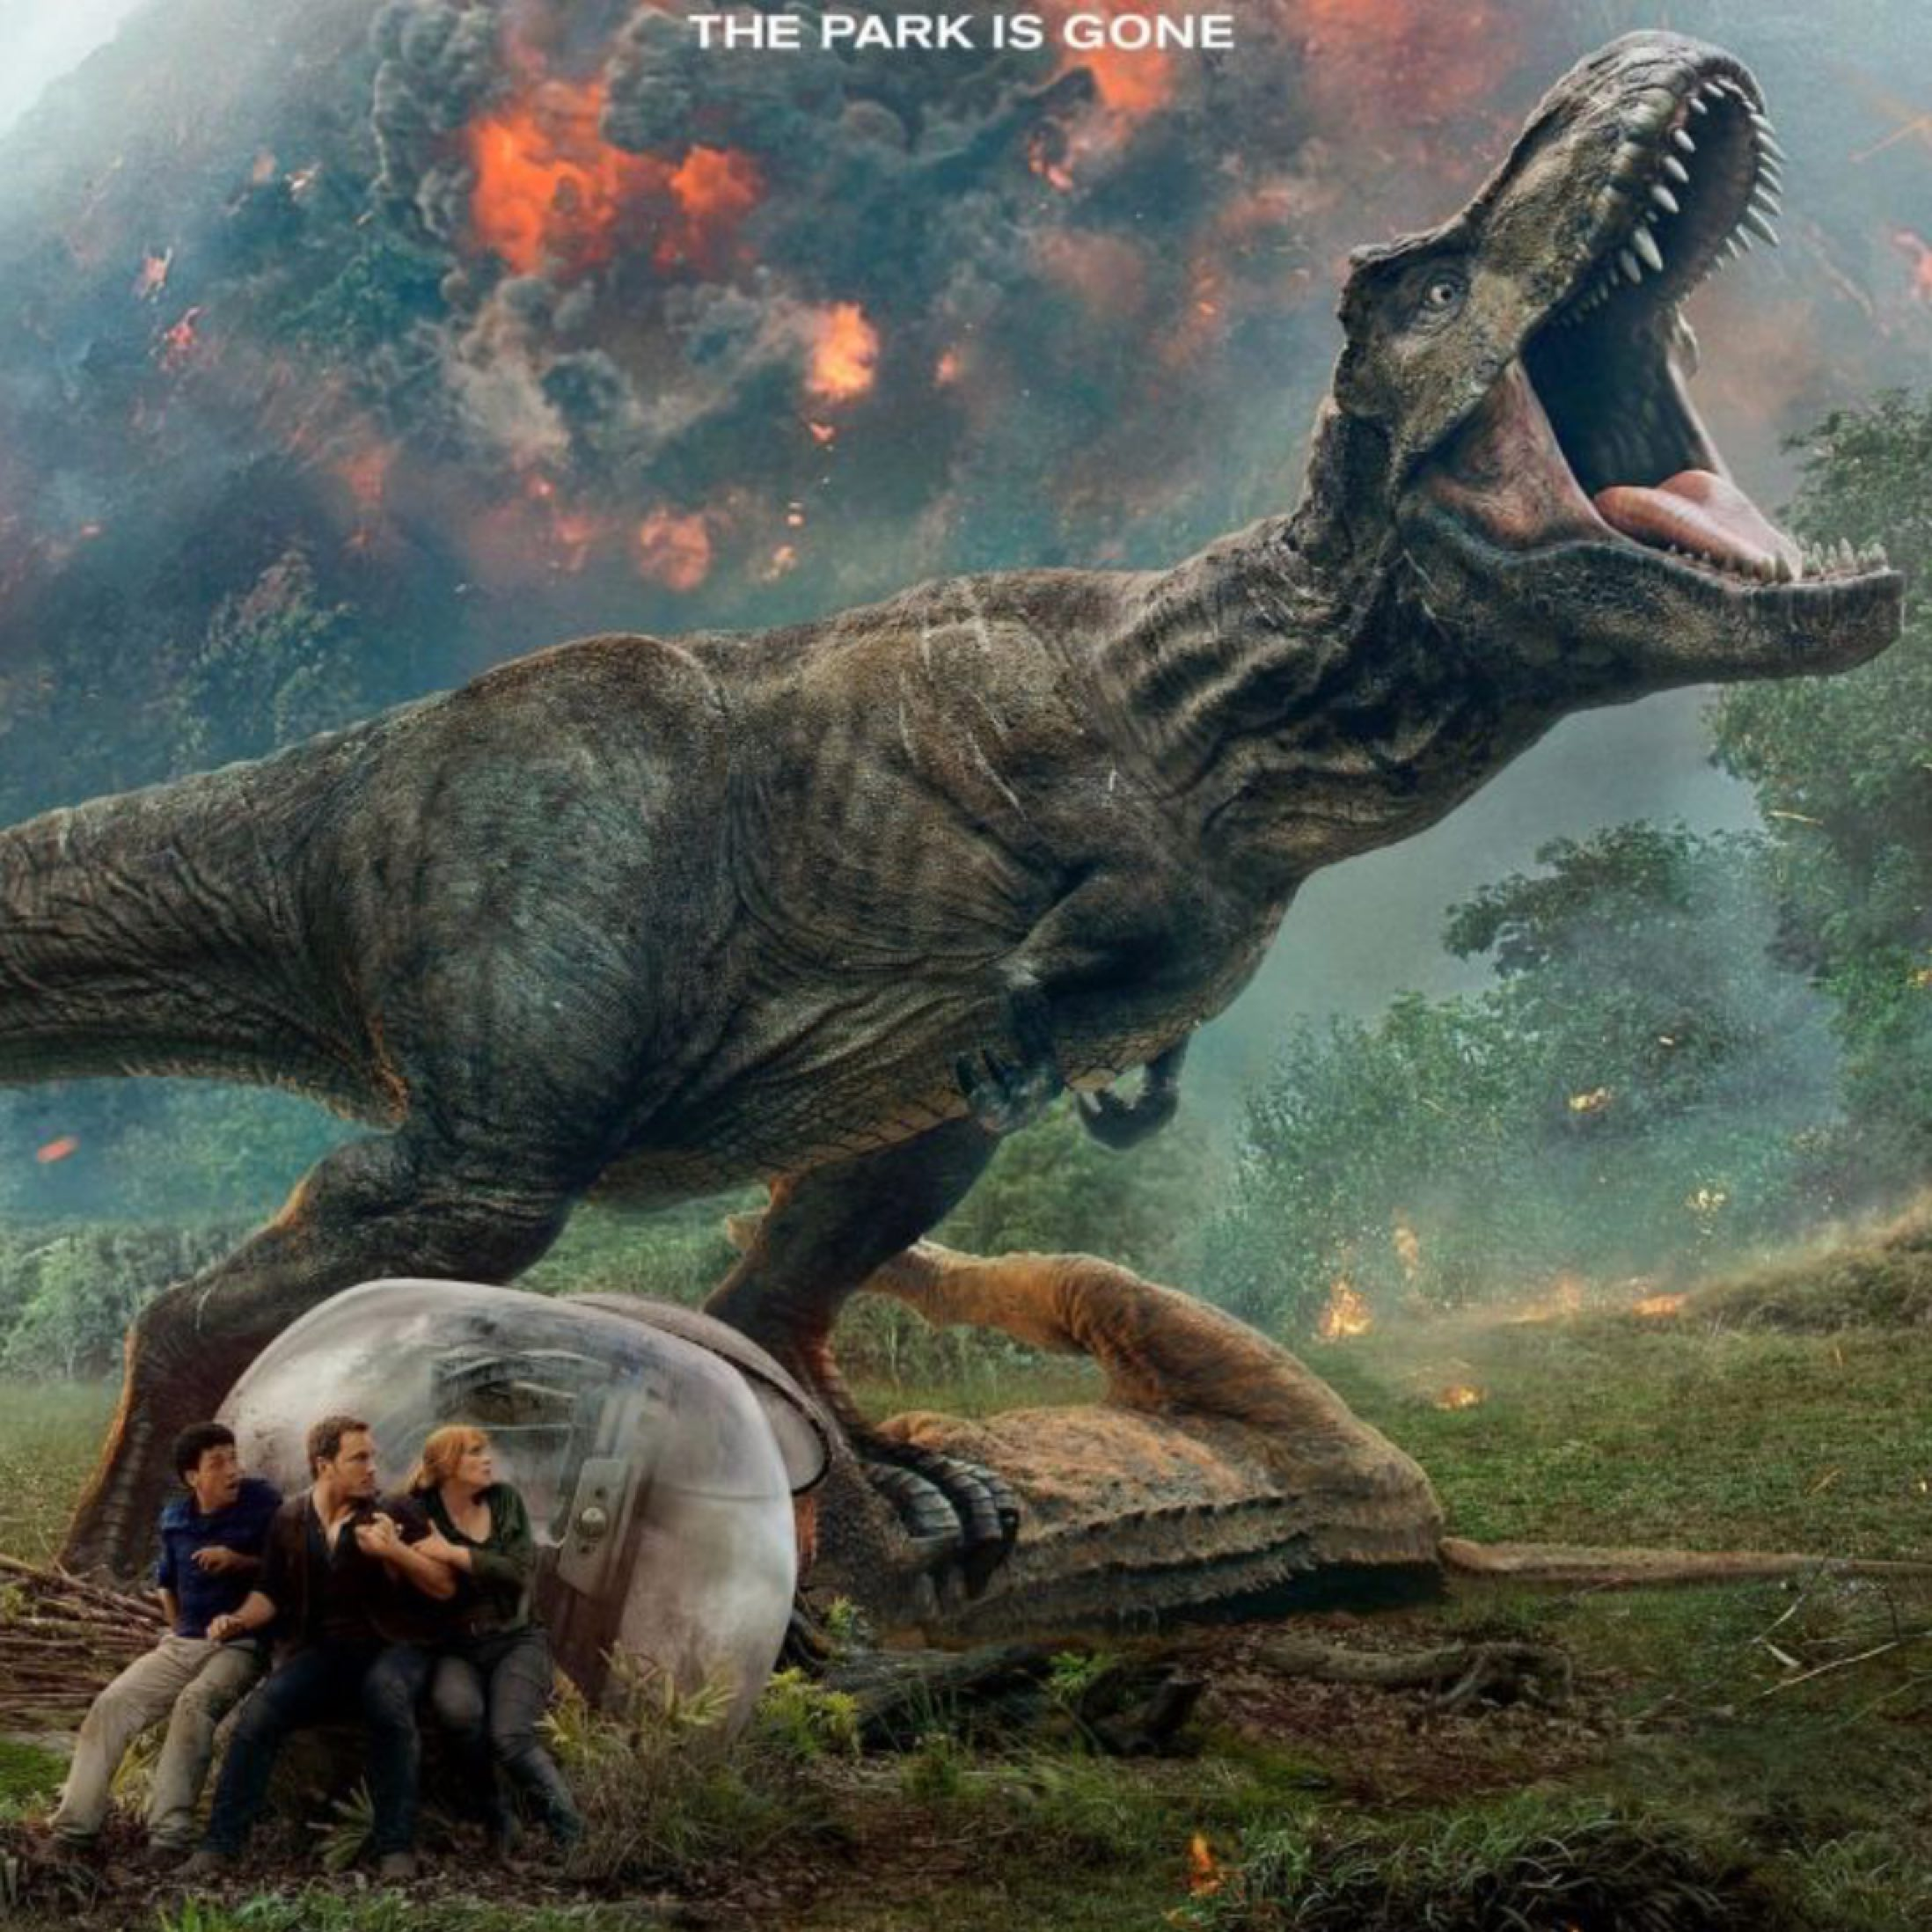 Download /Film Daily - Let's Talk Jurassic World: Fallen Kingdom